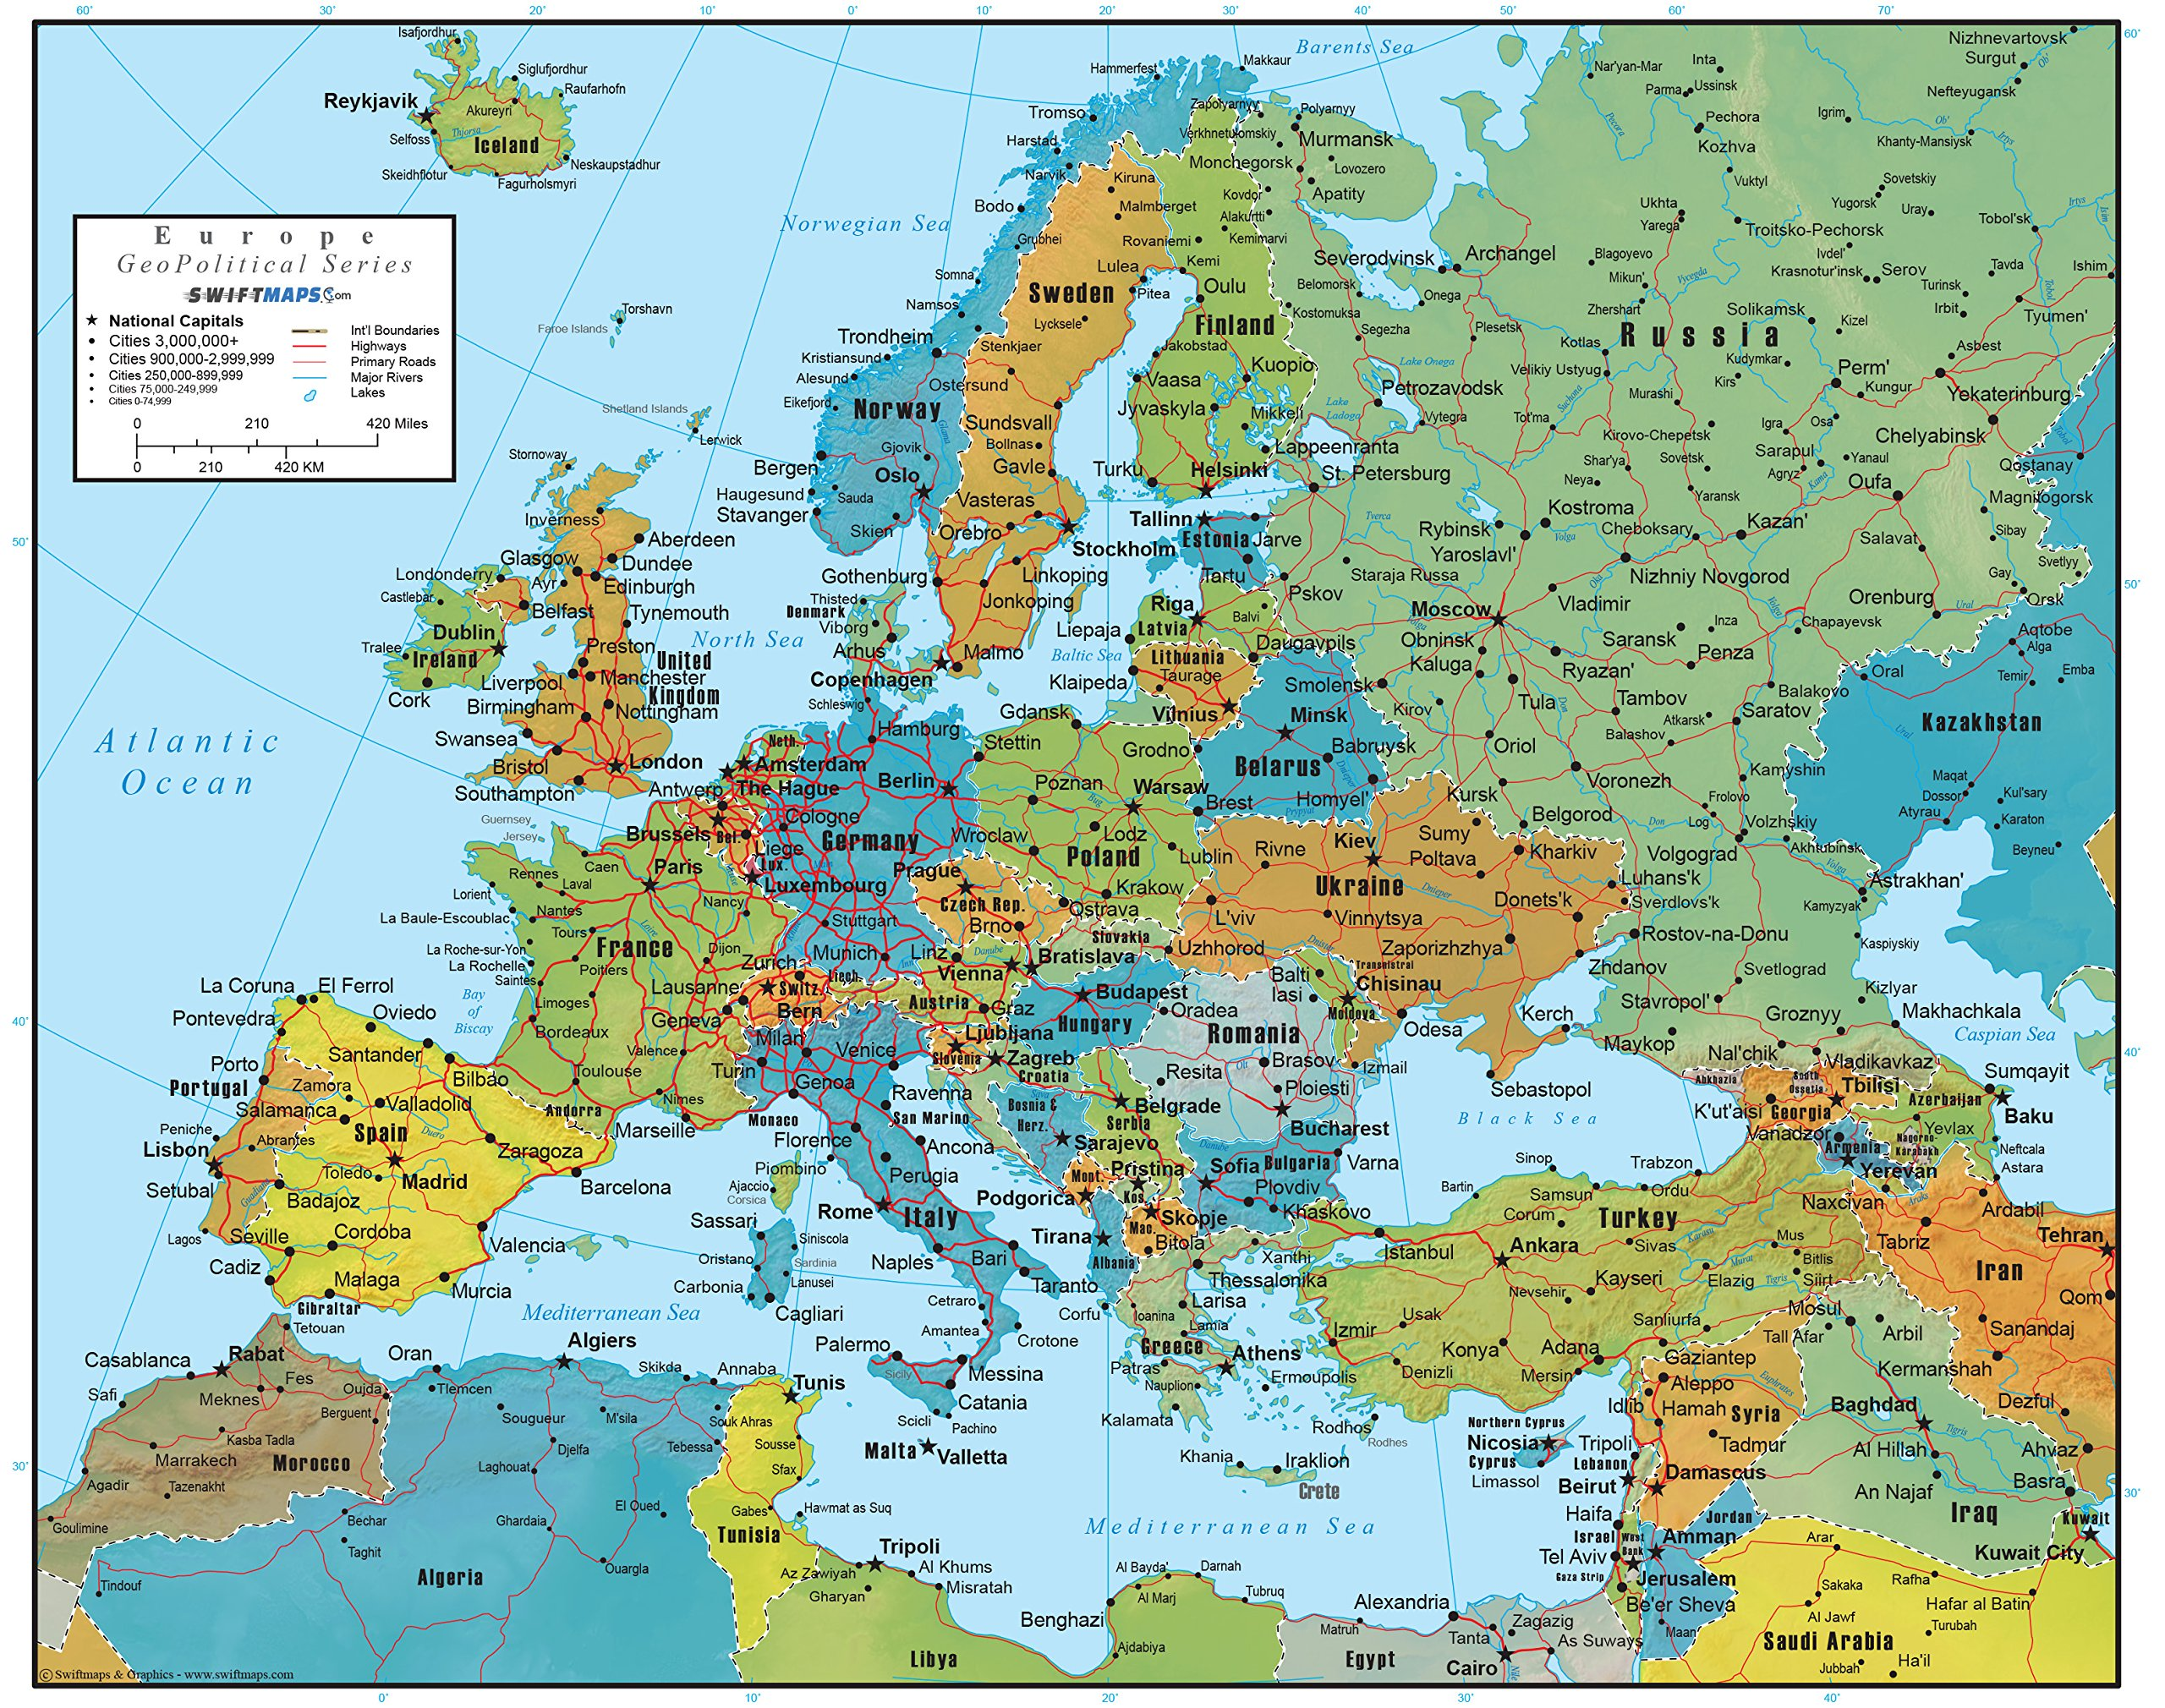 Europe Wall Map GeoPolitical Edition by Swiftmaps (36x44 Laminated)